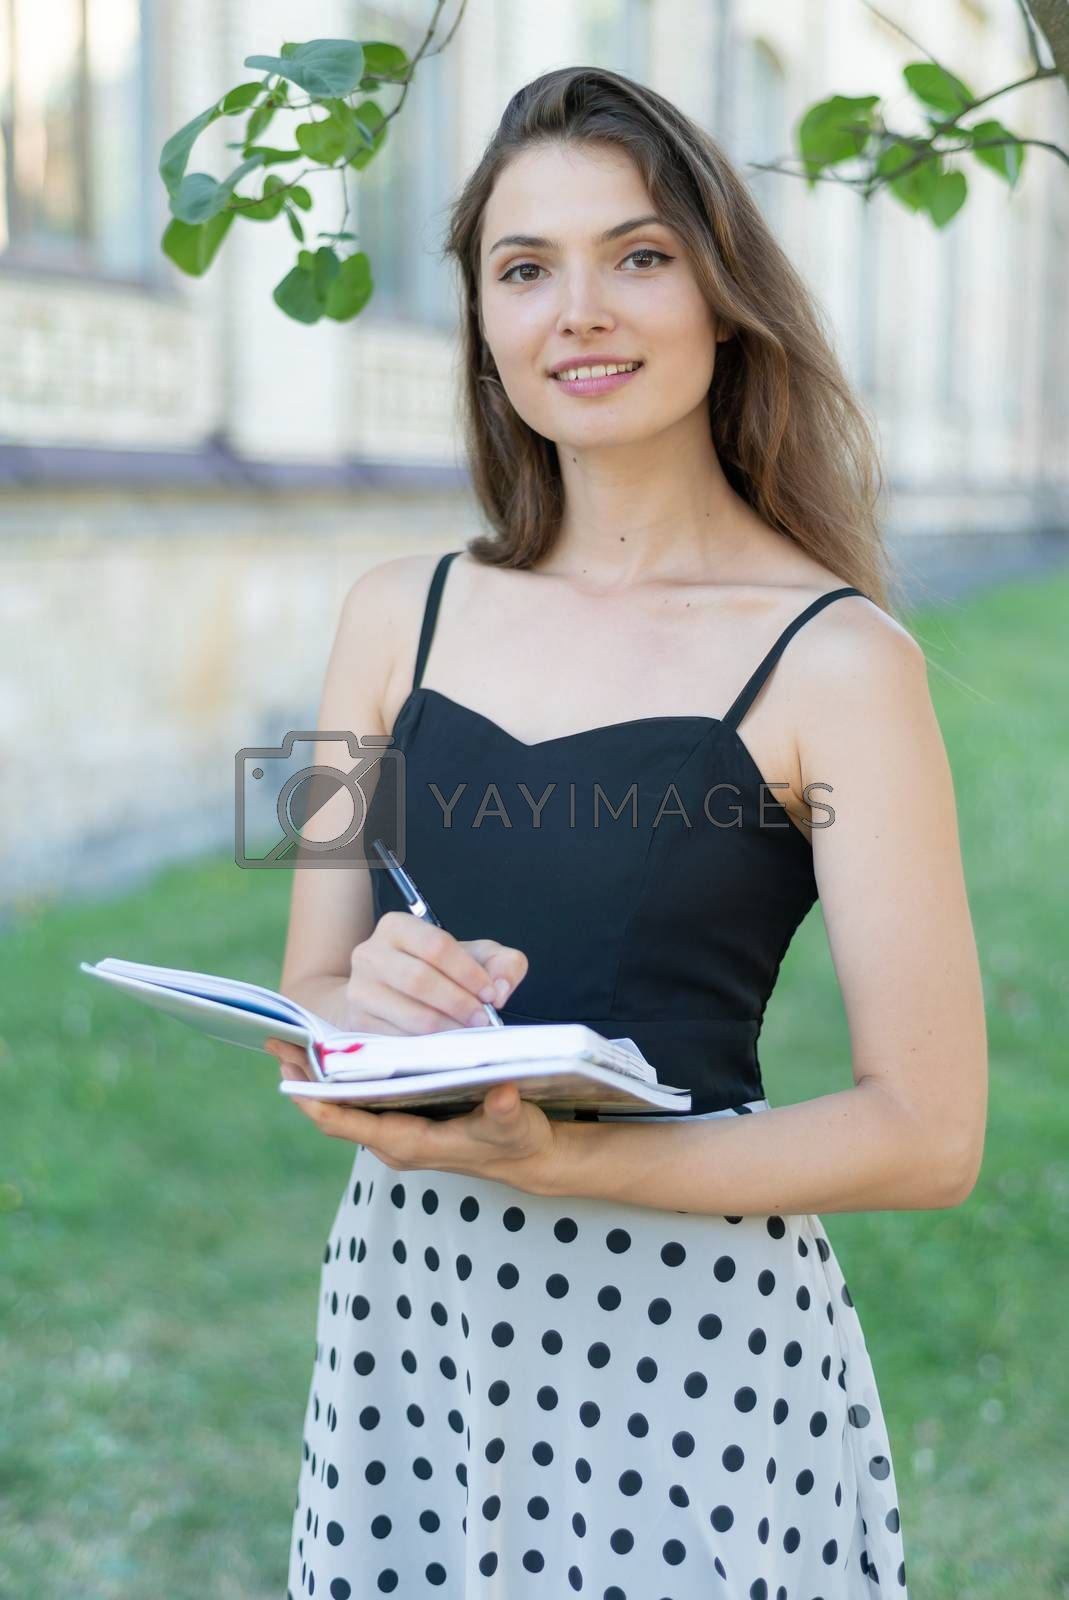 Young girl student with book and notebook